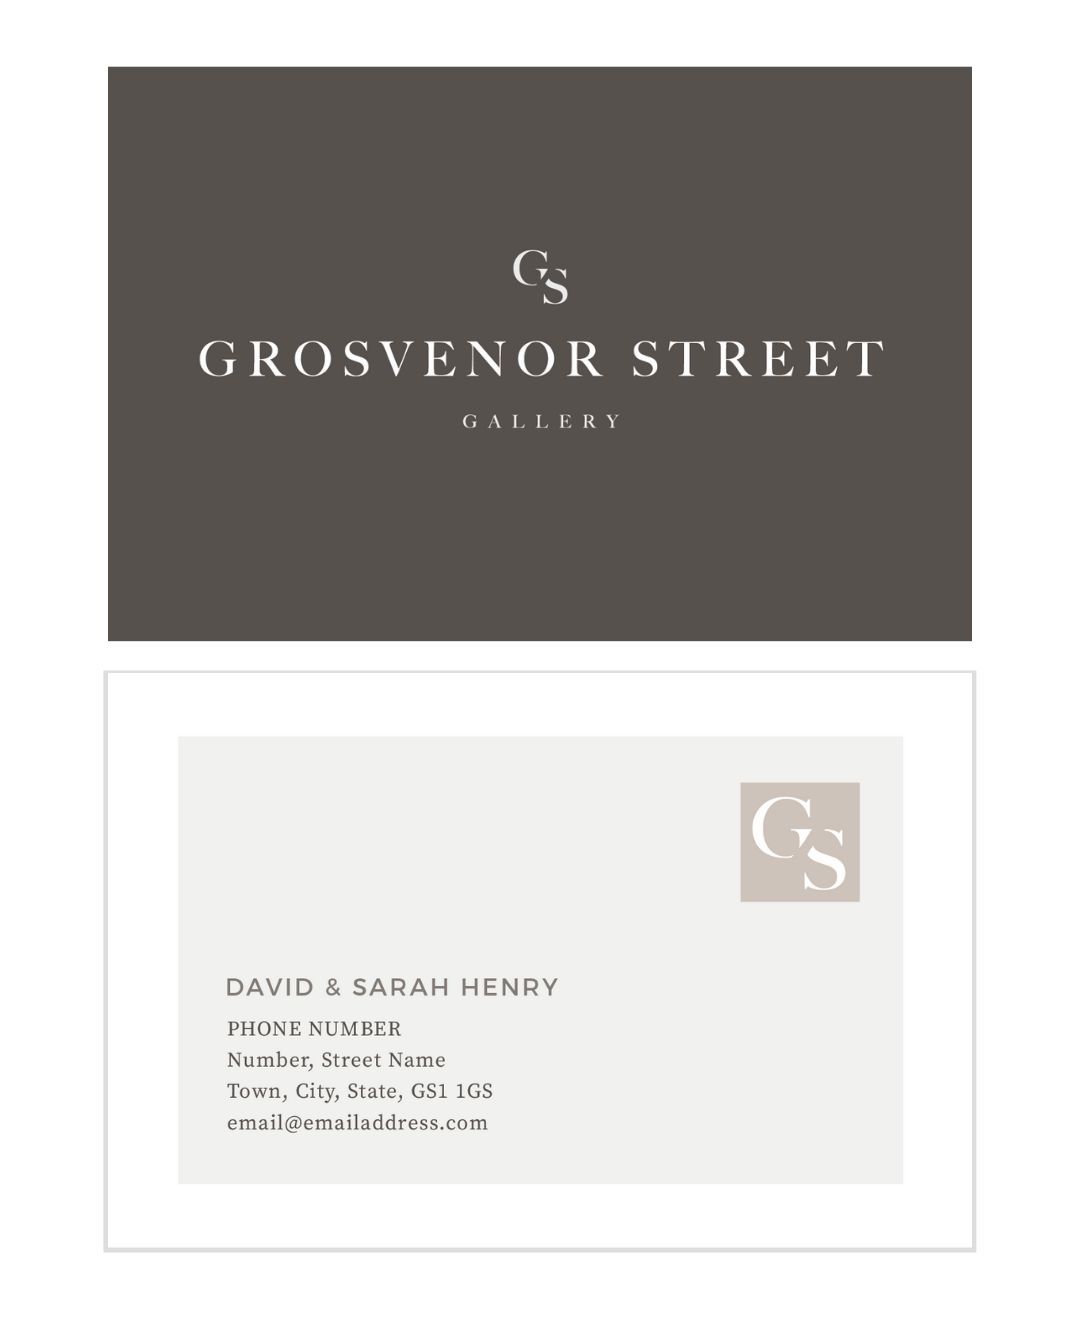 Minimal natural business card design for a gallery brand and logo